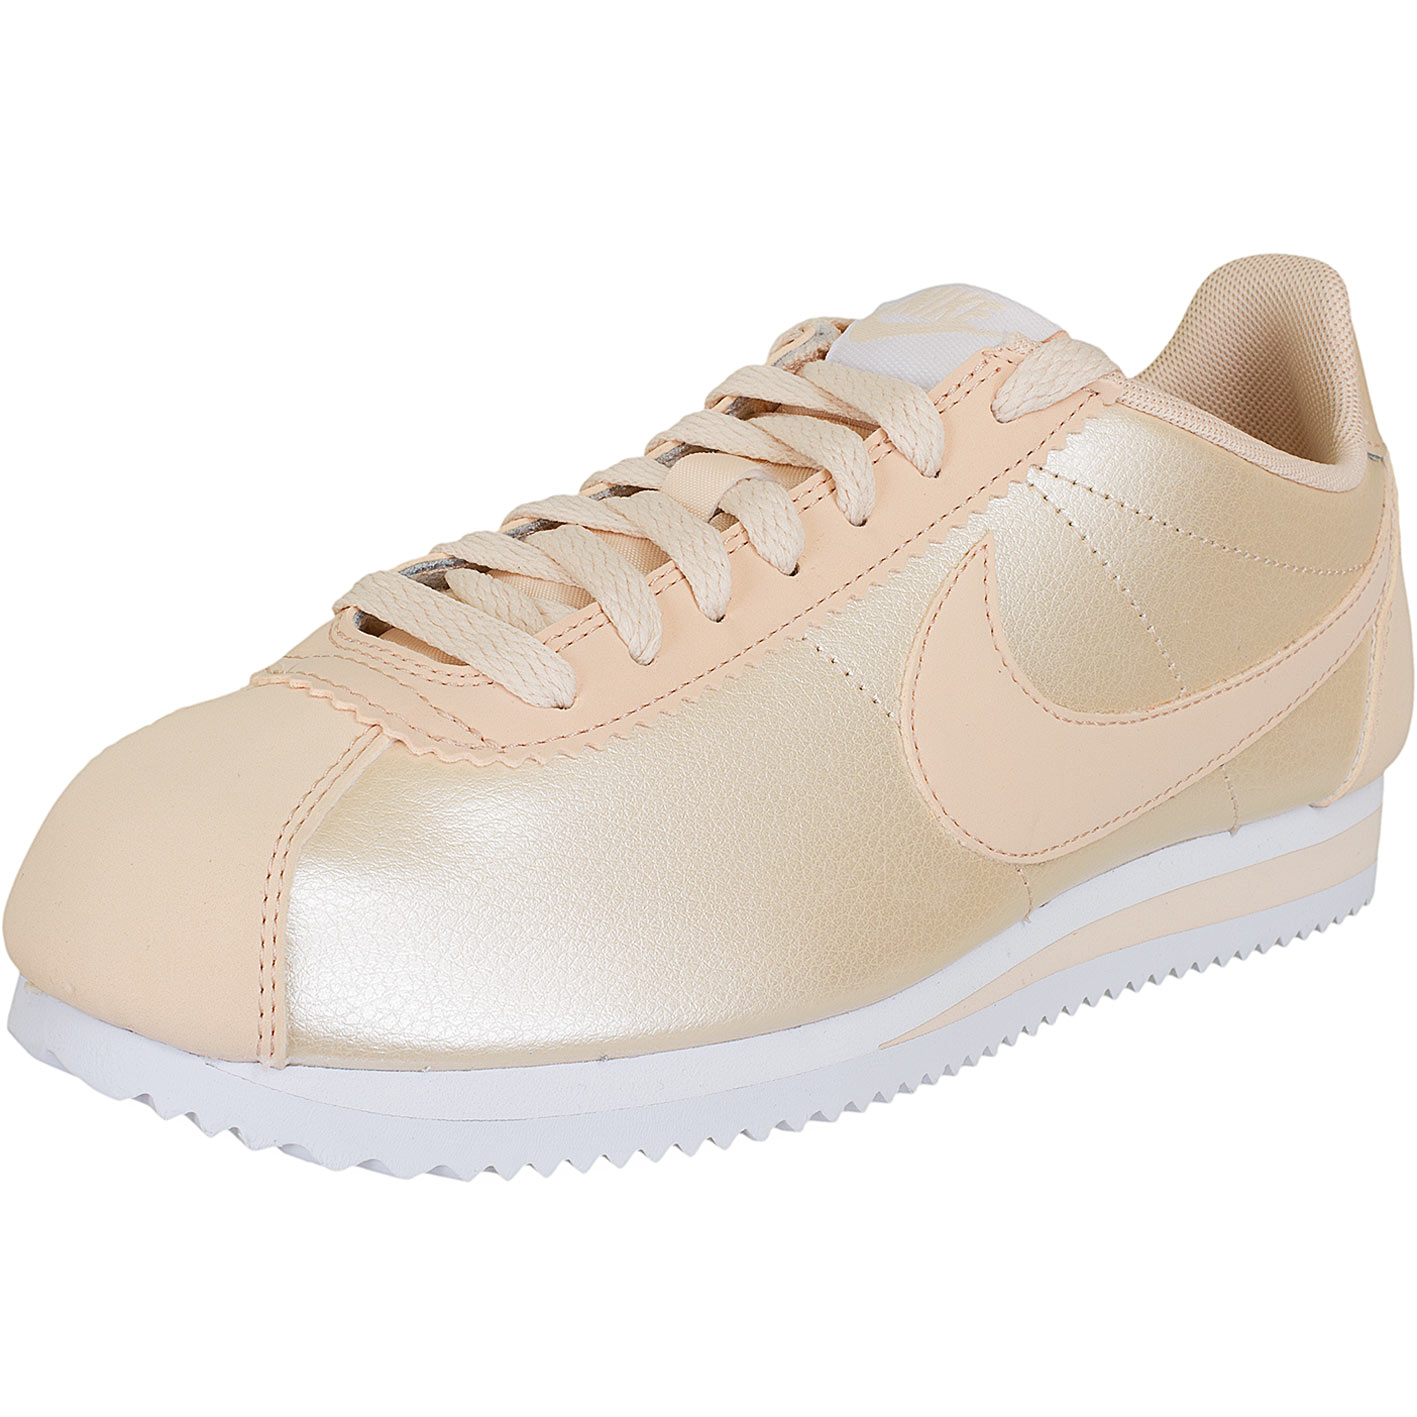 ☆ Nike Damen Sneaker Classic Cortez Leather orange coral - hier ... 25dda8c44f